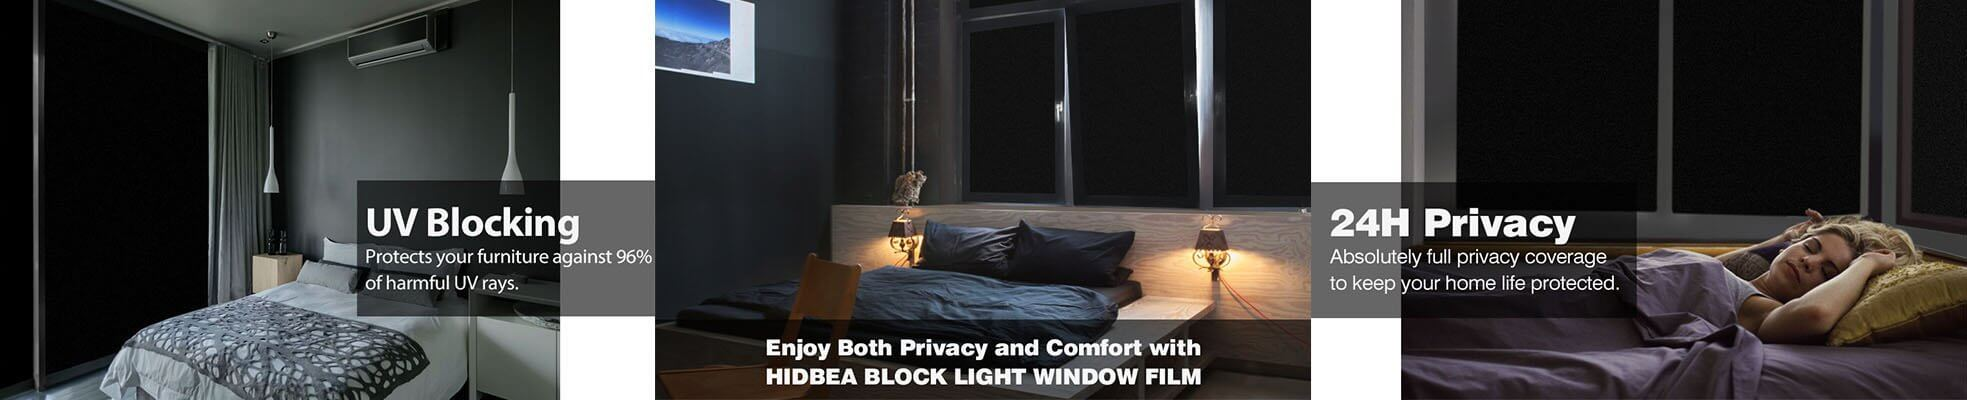 Blackout window film_description